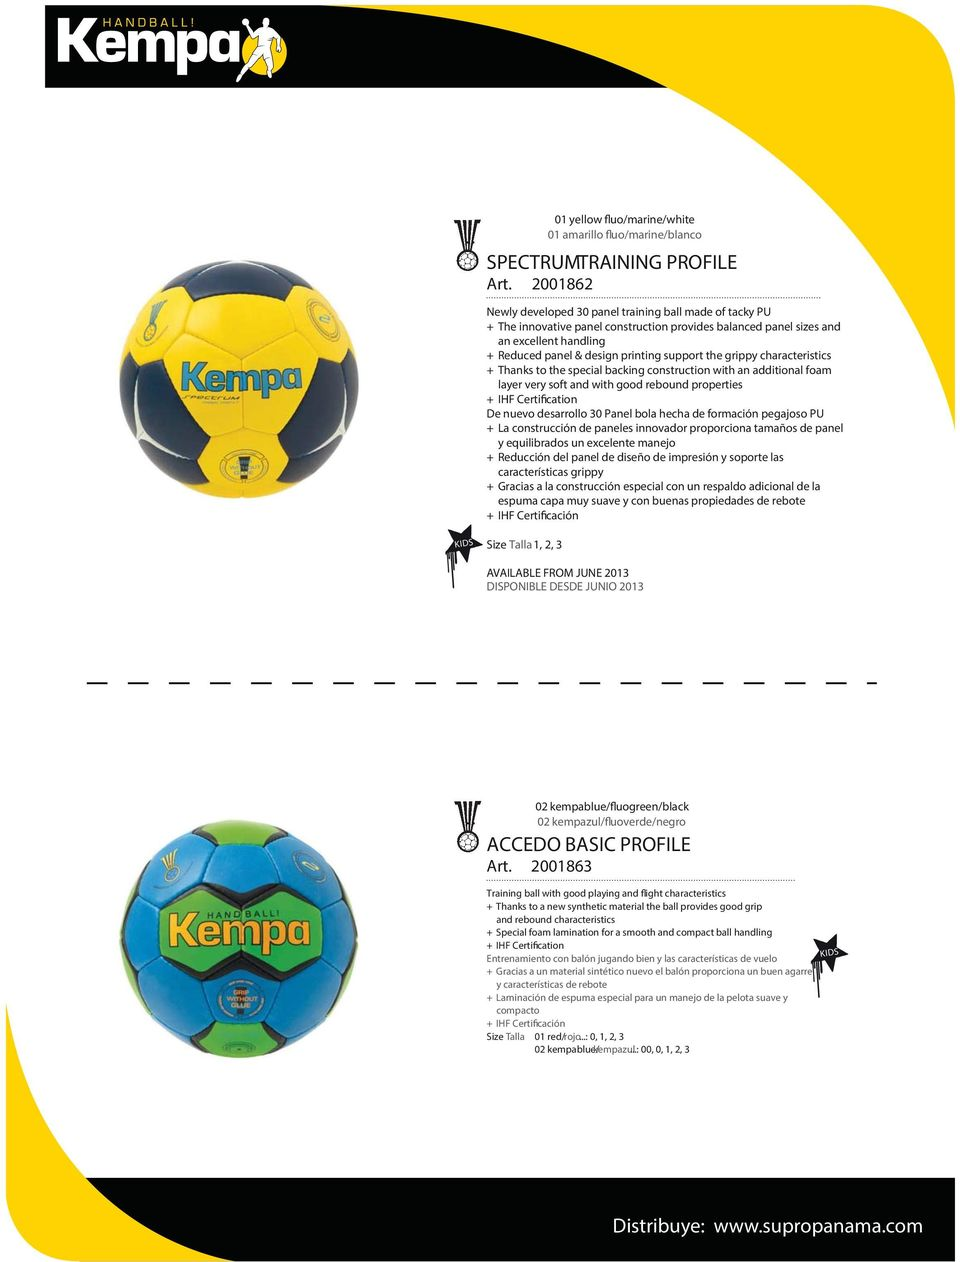 the grippy characteristics + Thanks to the special backing construction with an additional foam layer very soft and with good rebound properties De nuevo desarrollo 30 Panel bola hecha de formación